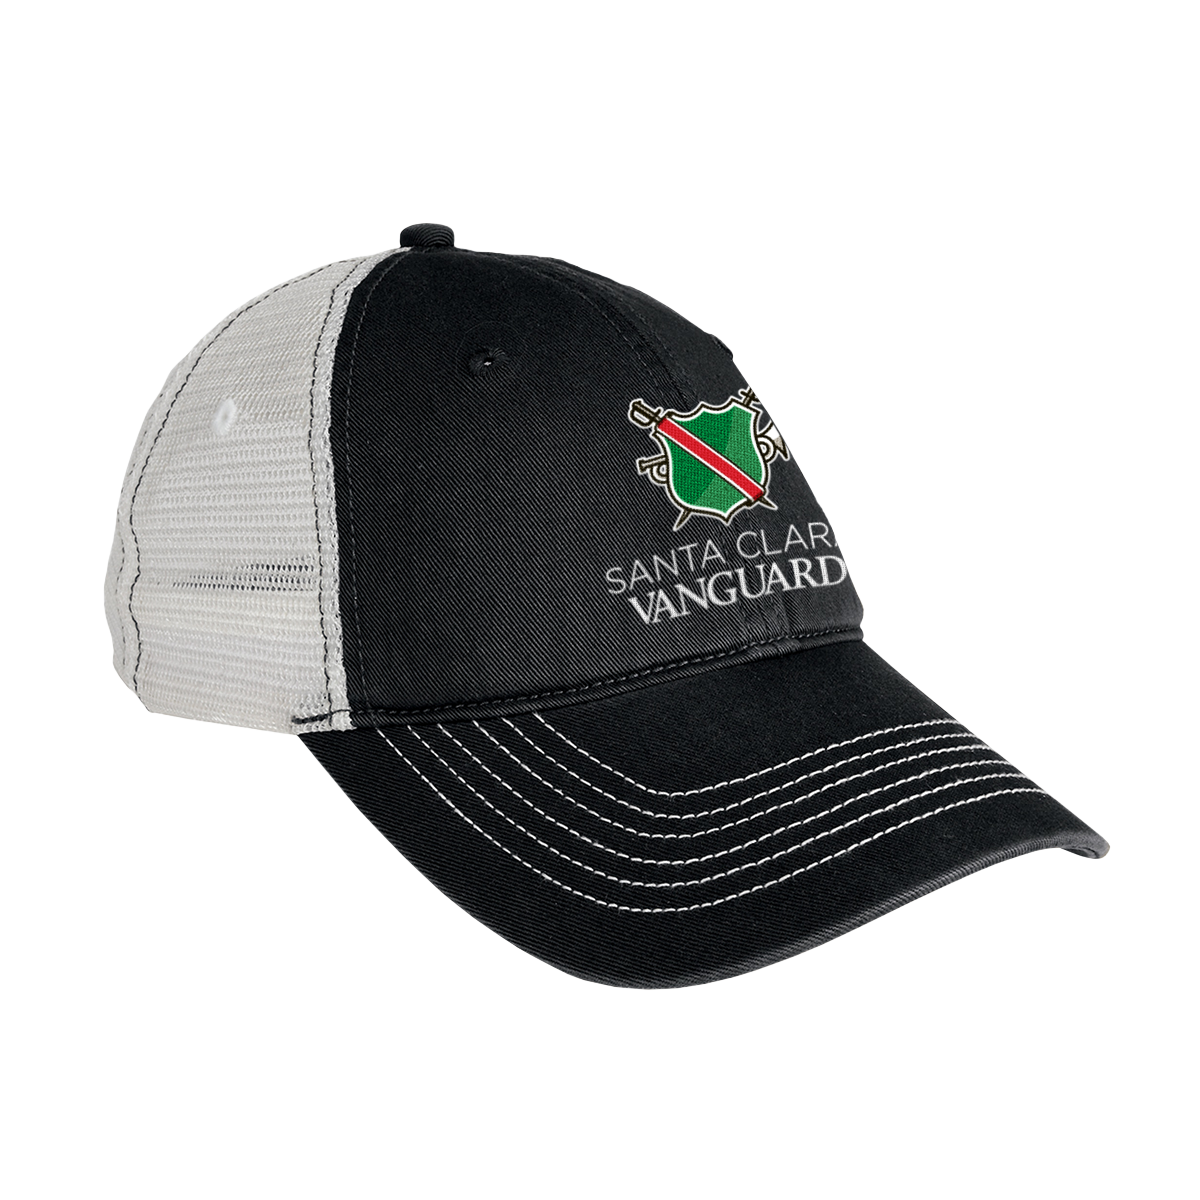 Apparel - Headwear - 67 Pro Shop :: Vanguard Music